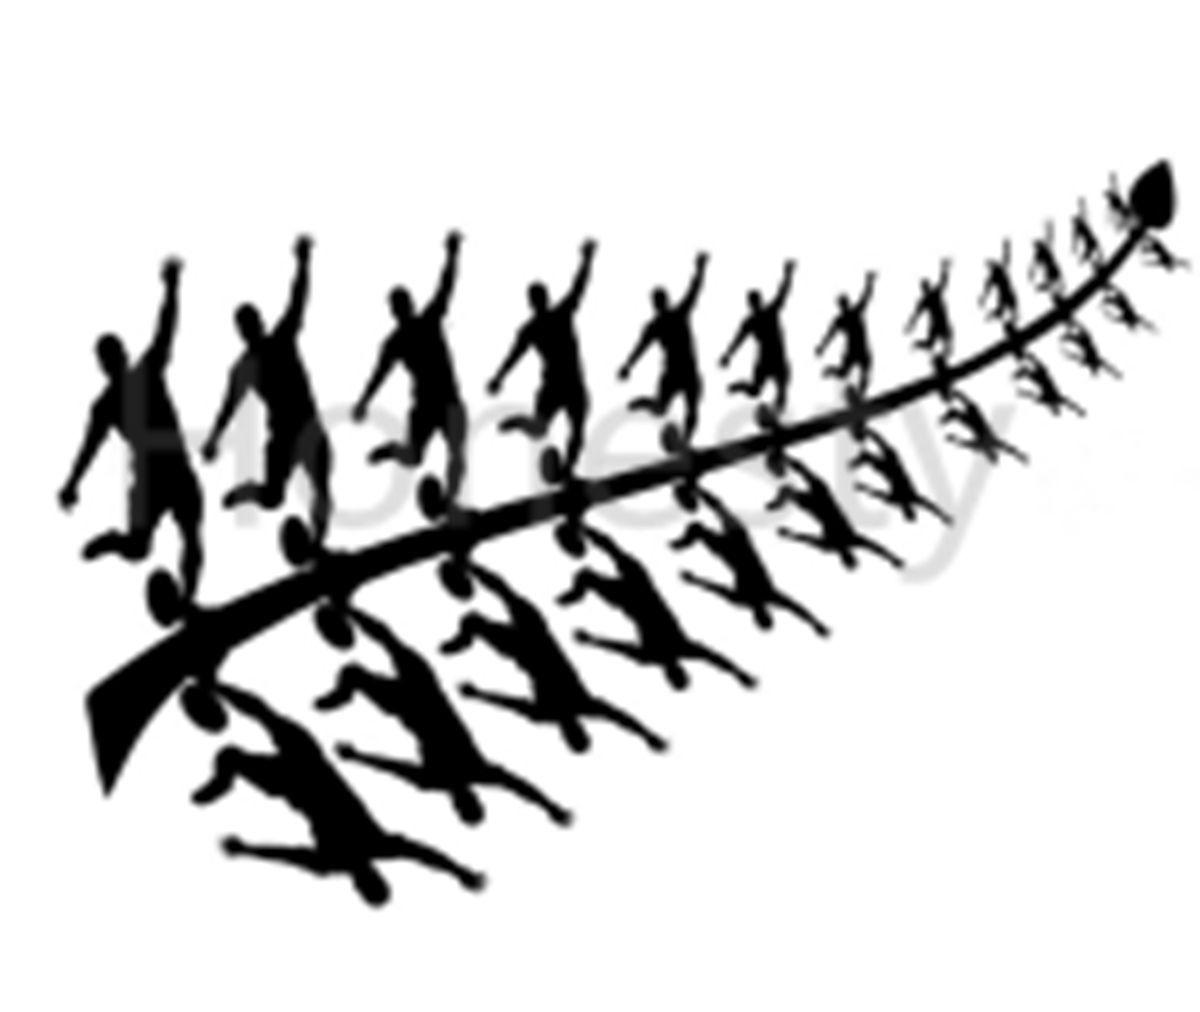 Aotharoa New Zealand Kiwi Fern Rugby All Black Fern Wall